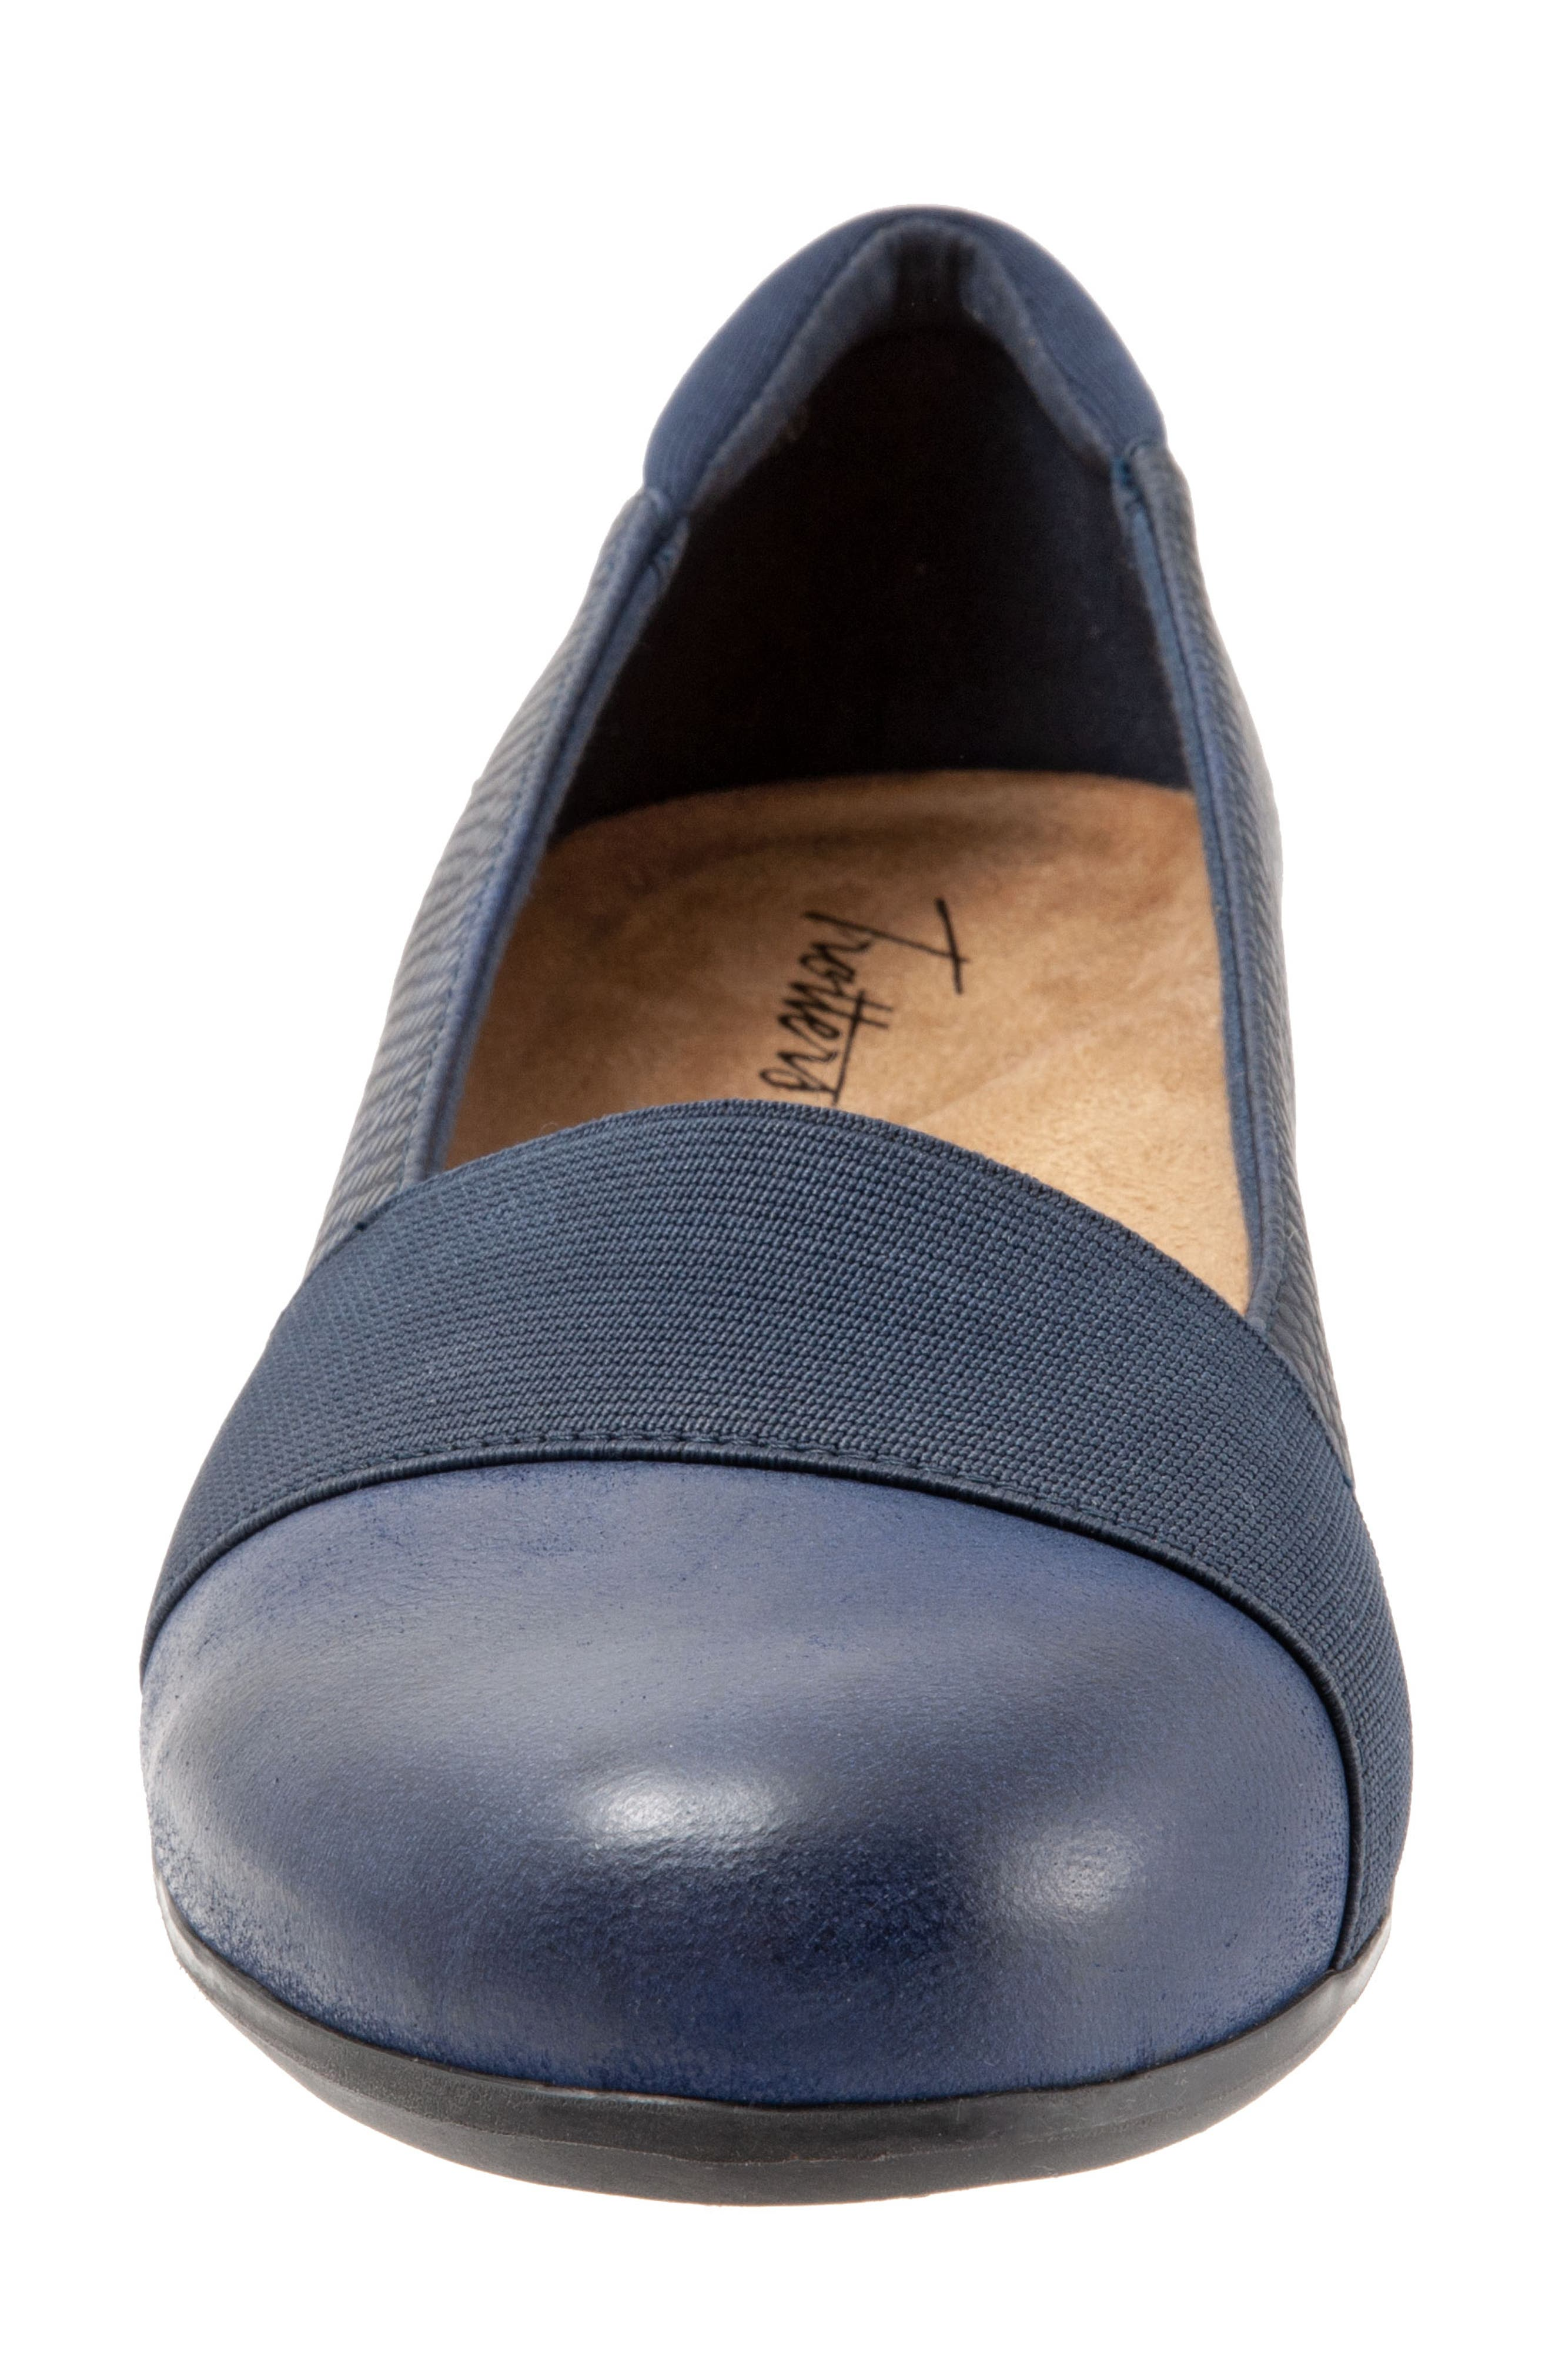 TROTTERS,                             Melinda Loafer,                             Alternate thumbnail 4, color,                             NAVY LEATHER